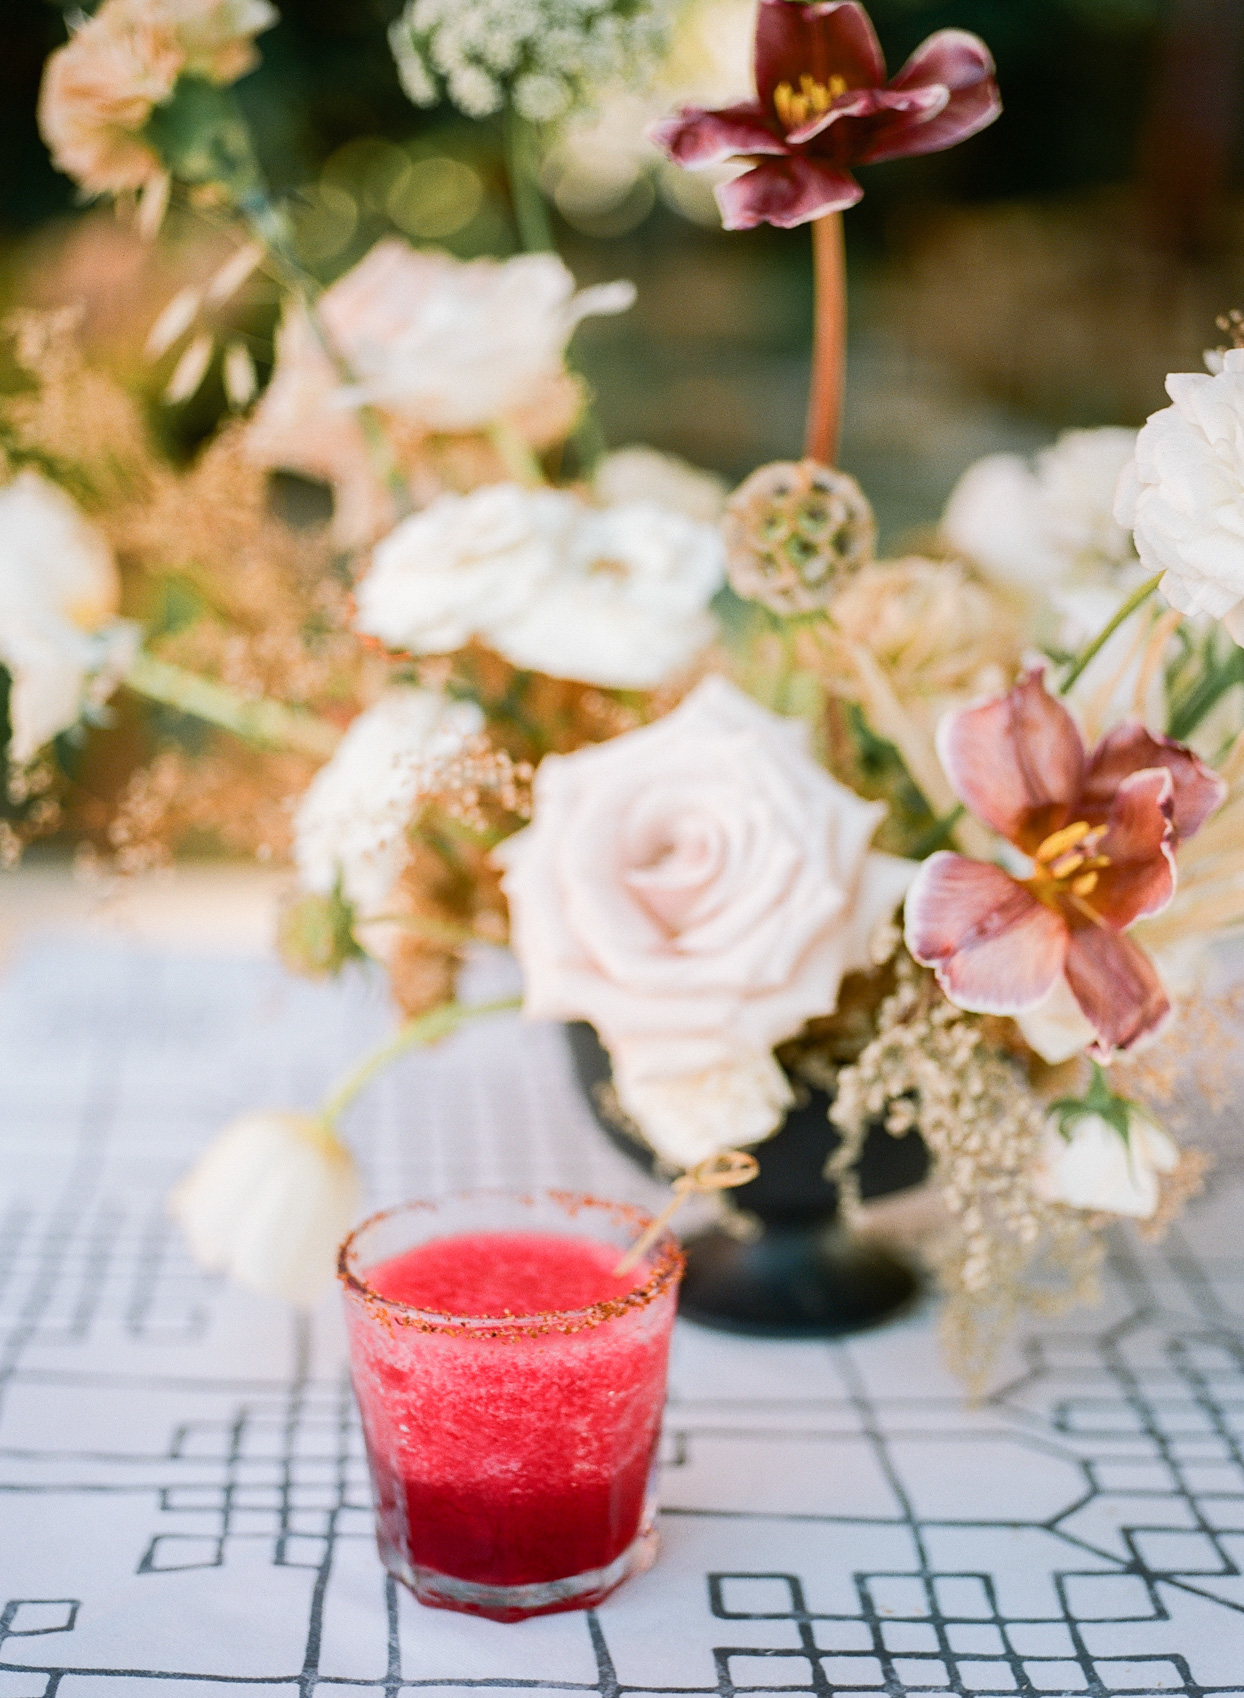 custom cocktail on table with flowers for wedding